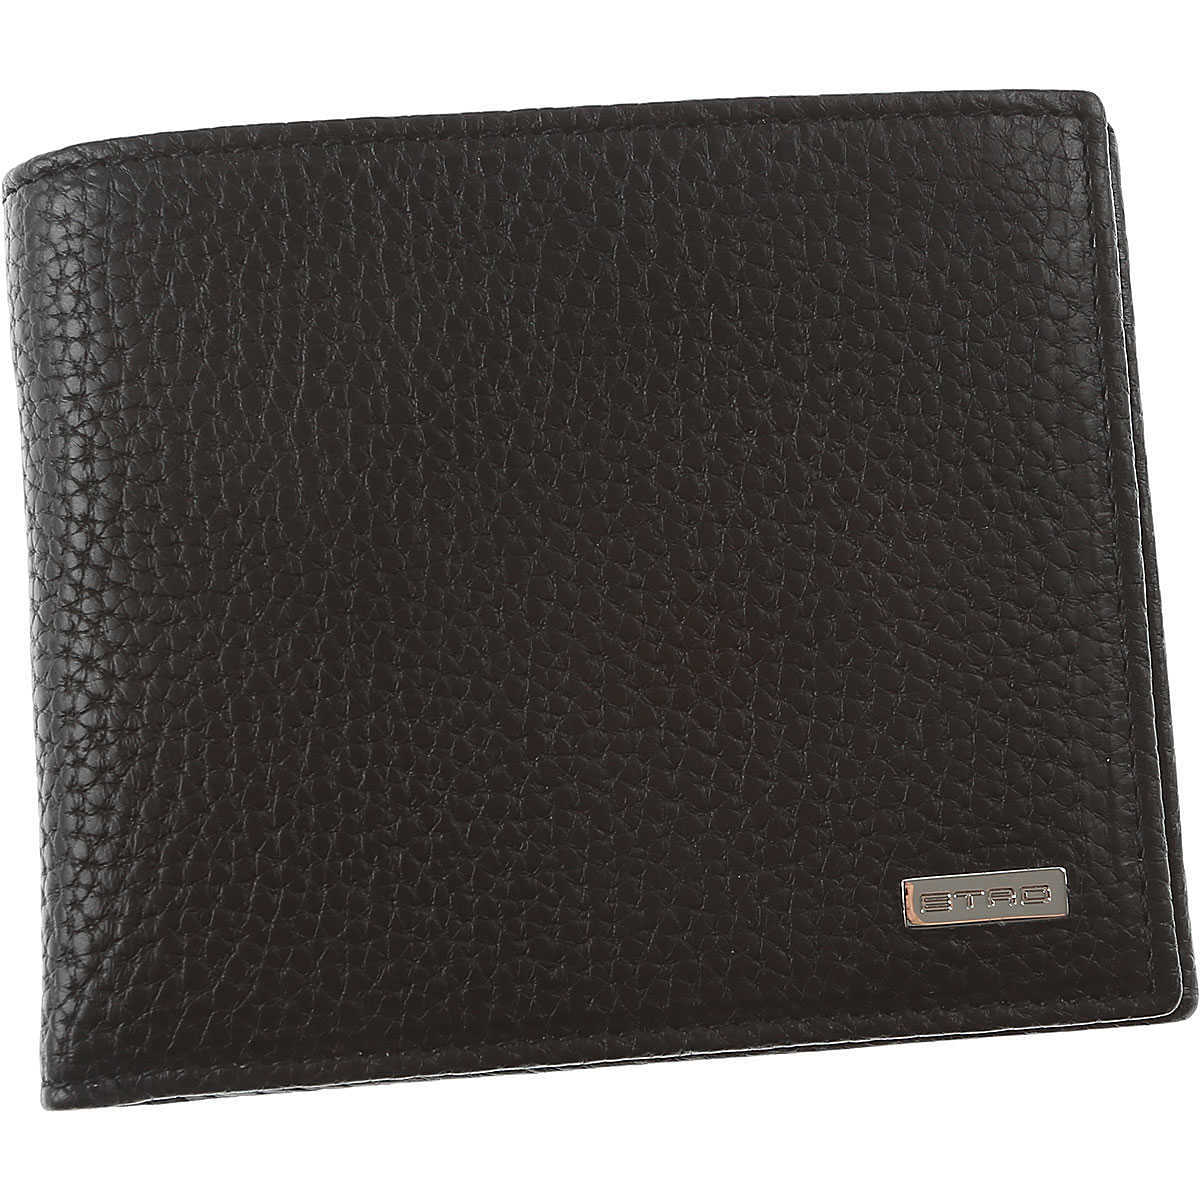 Etro Wallet for Men On Sale Black - GOOFASH